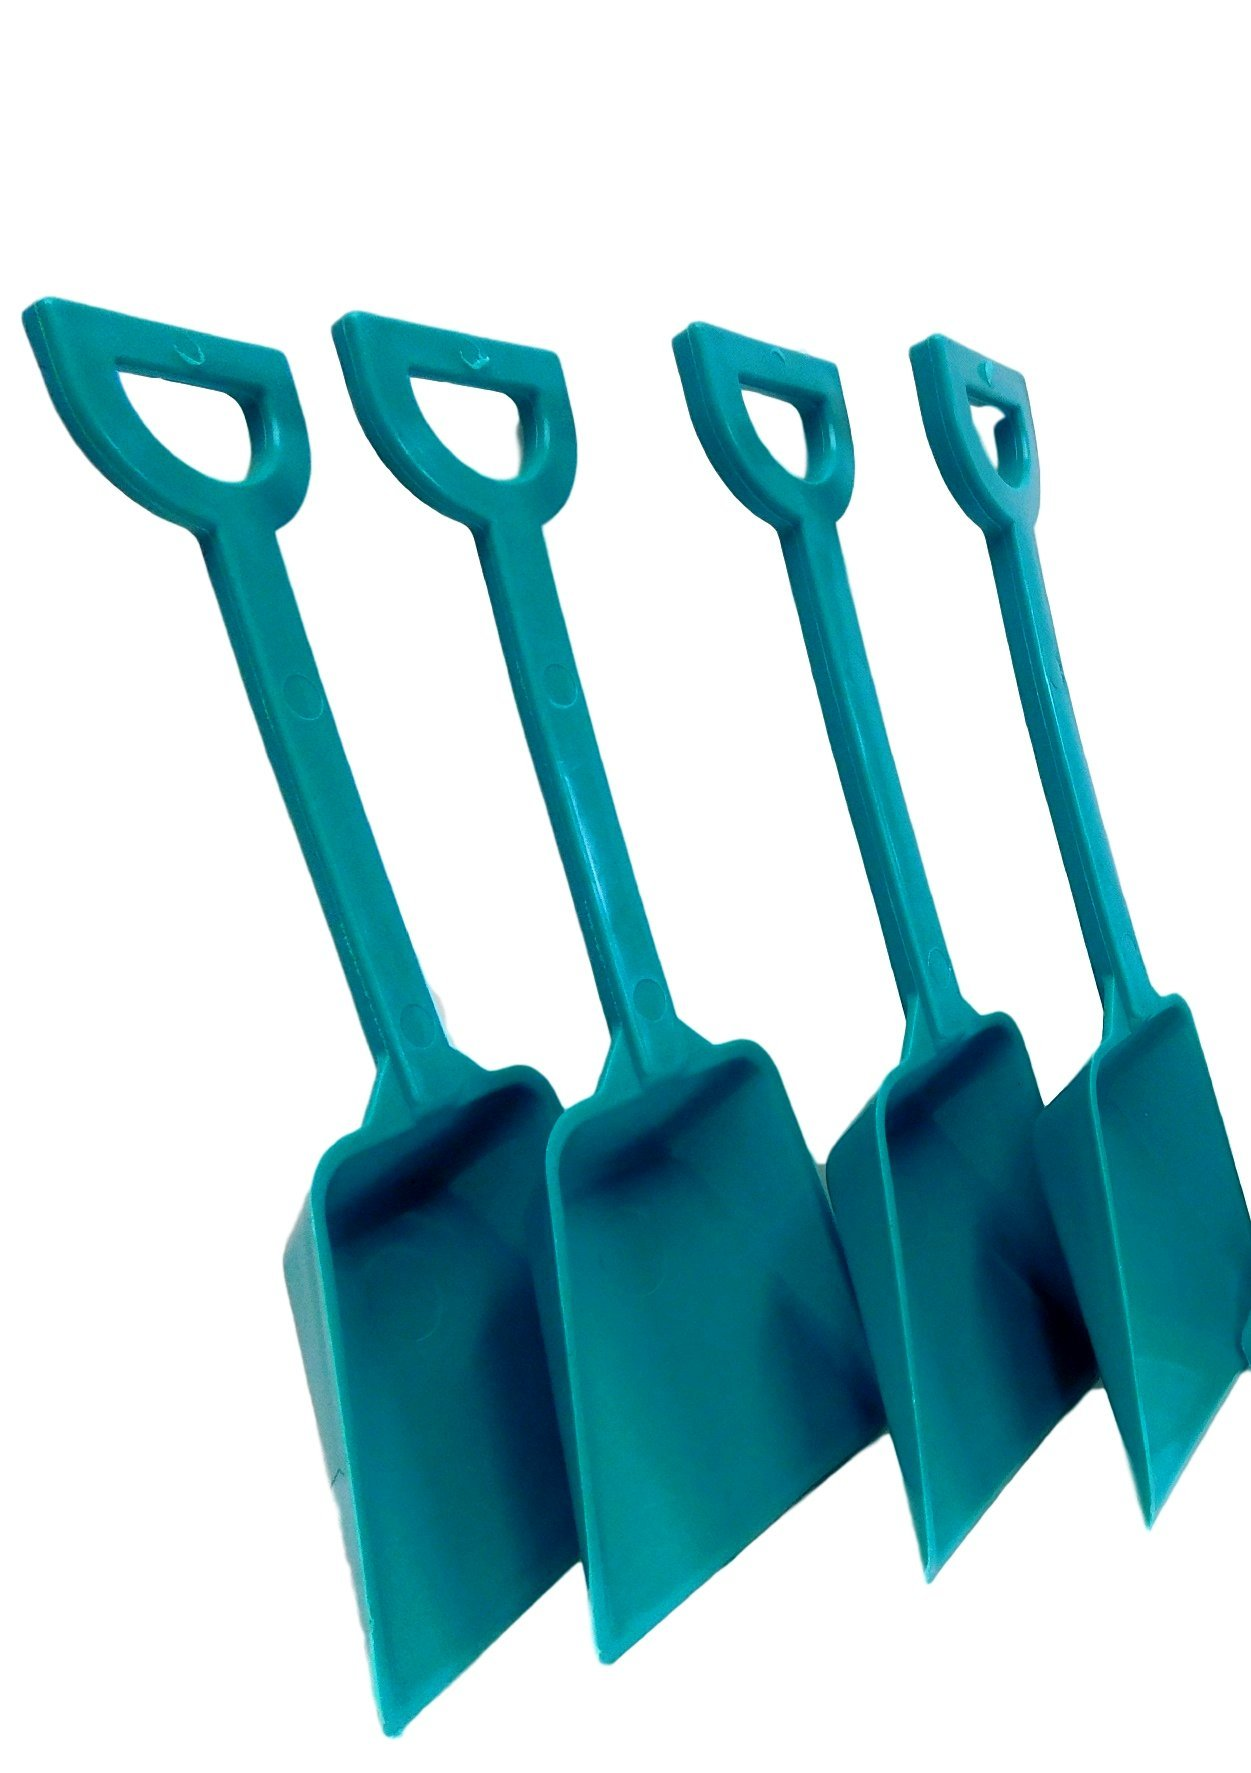 Small Toy Plastic Shovels Wholesale Lot, Pack 500, 7 Inches Tall, Color Teal